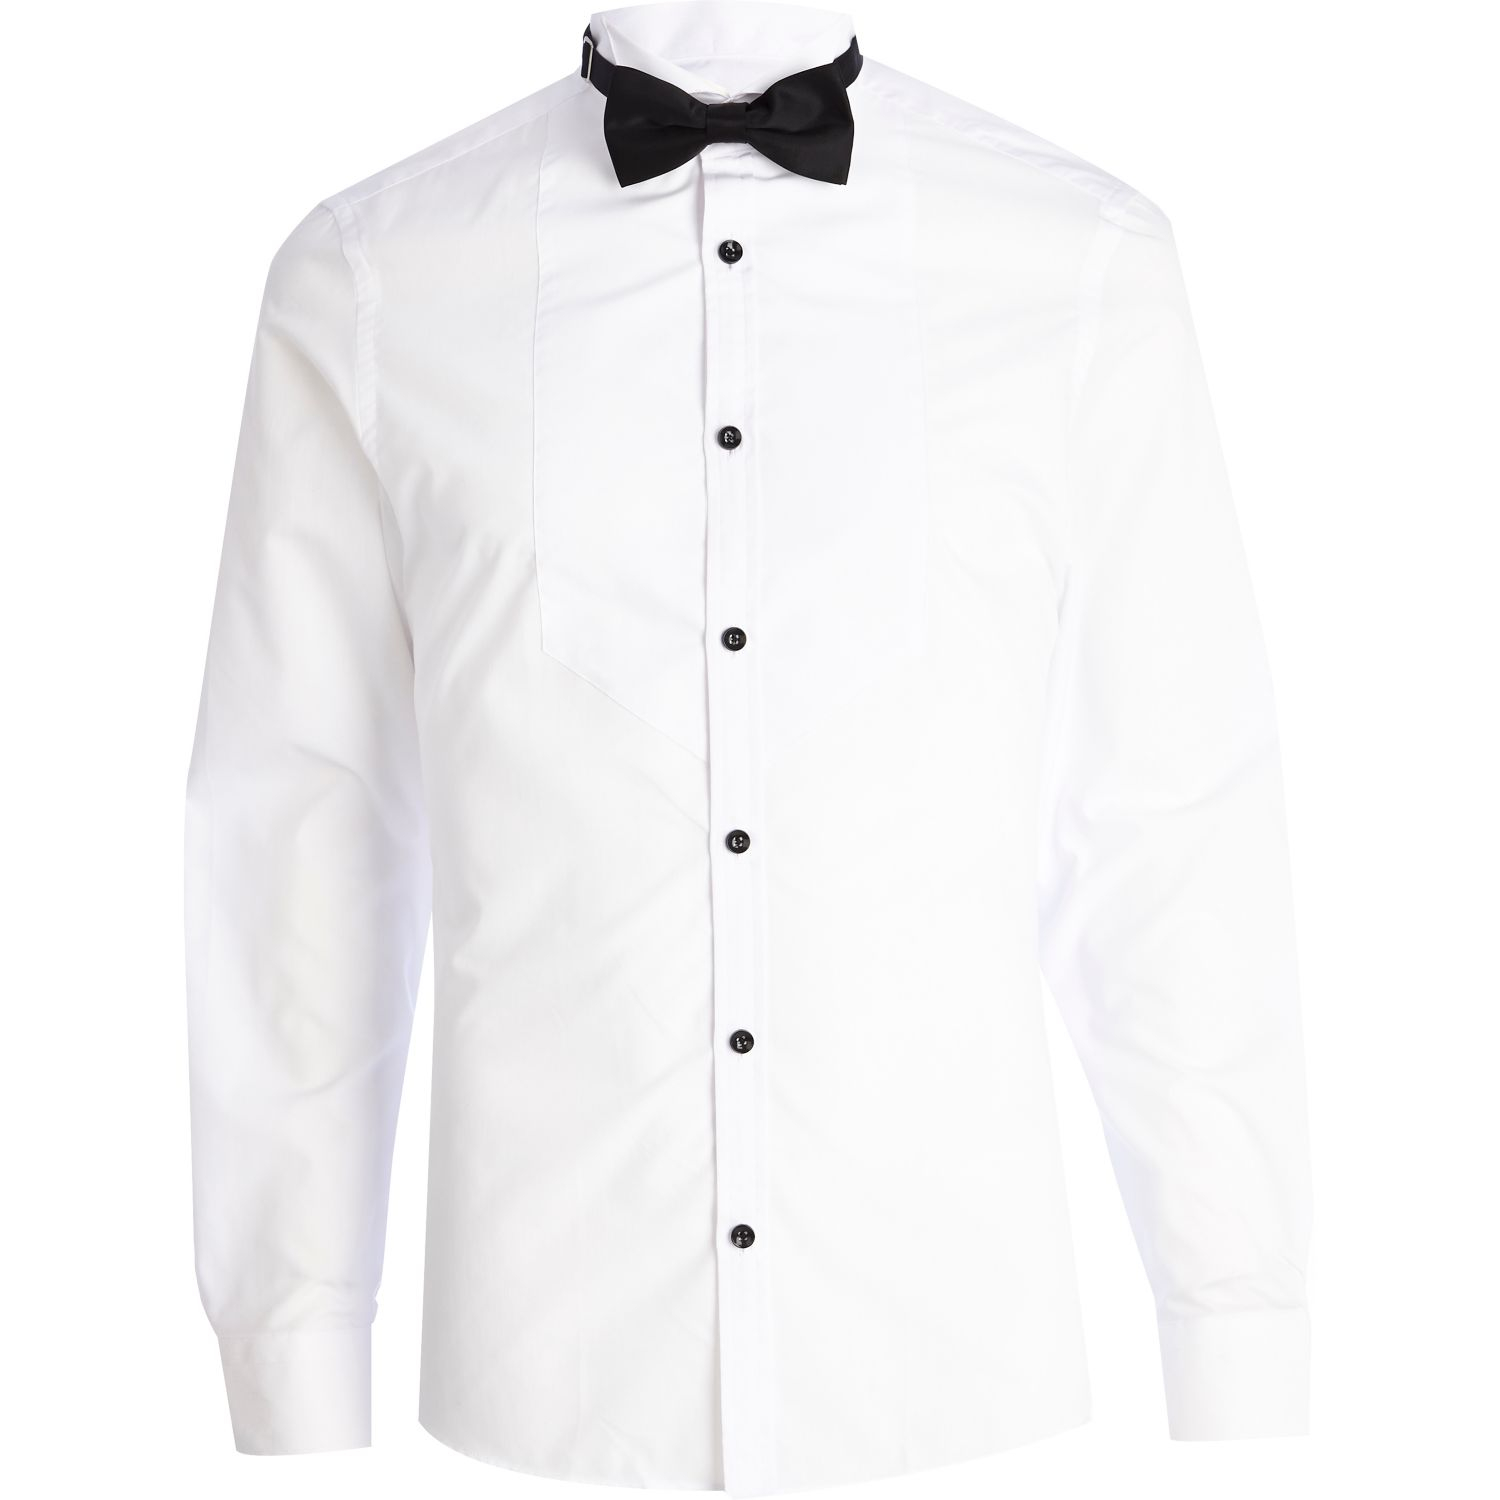 River island white formal tux shirt with bow tie in white for White shirt for tuxedo